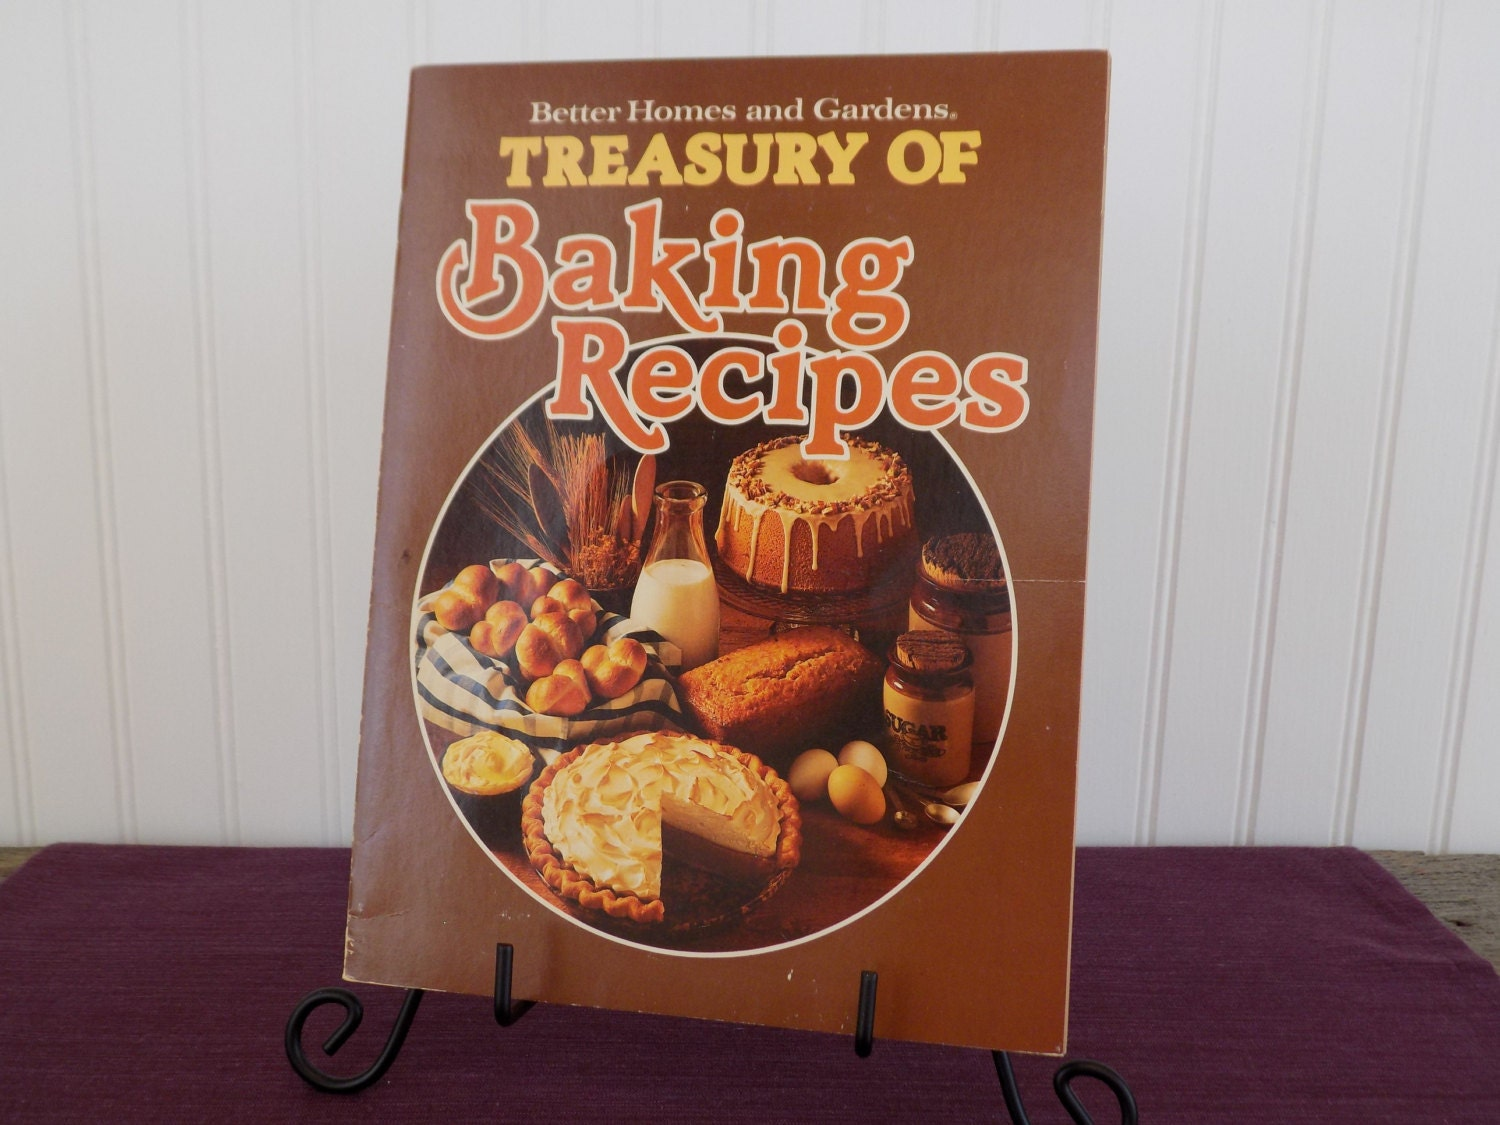 7 Popular Siding Materials To Consider: Better Homes And Gardens Treasury Of Baking Recipes Vintage